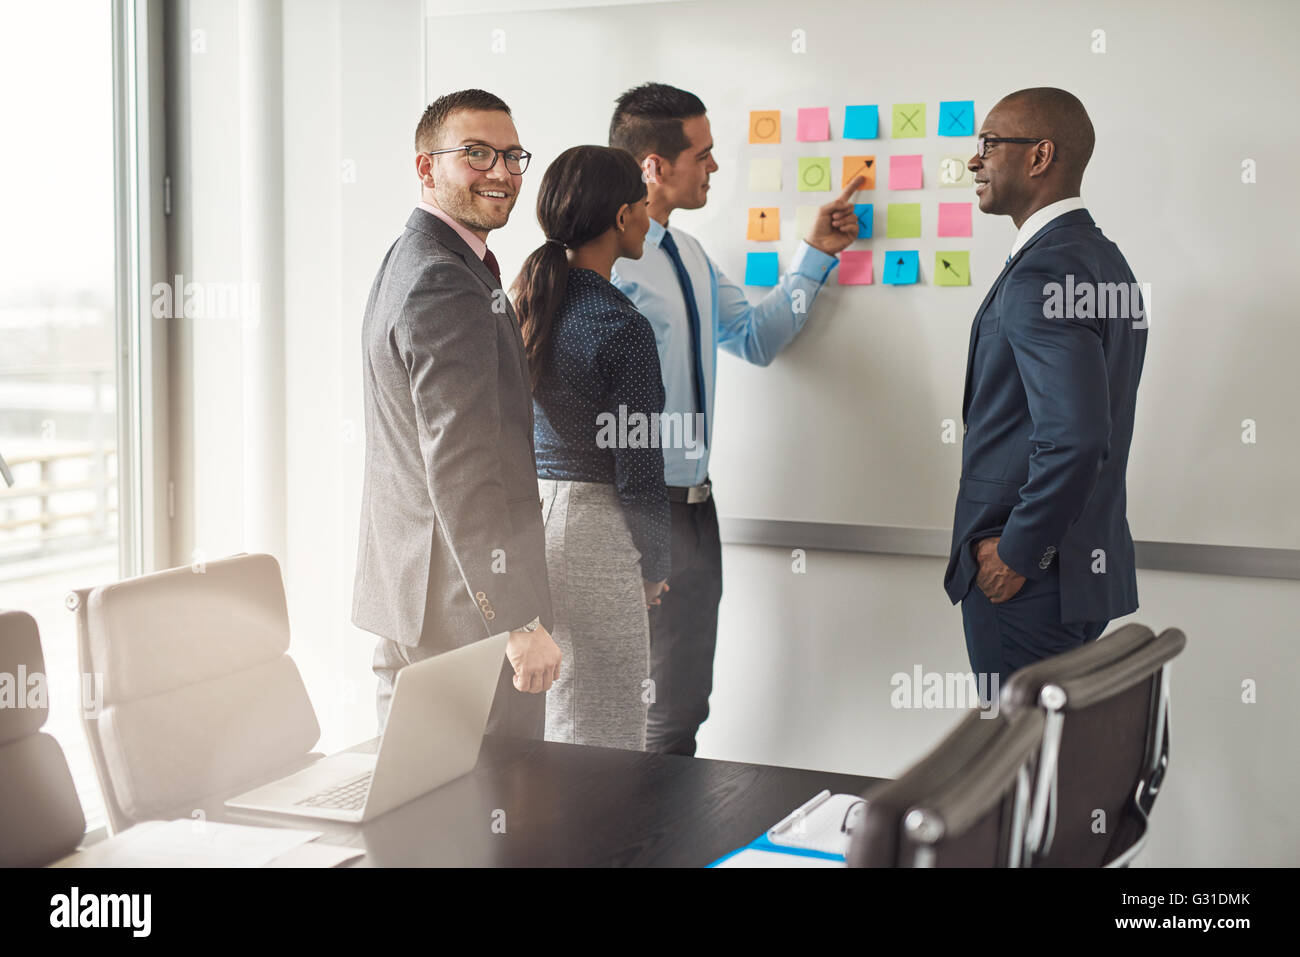 Cheerful group of diverse business people in conference meeting using colorful sticky notes to organize ideas on - Stock Image